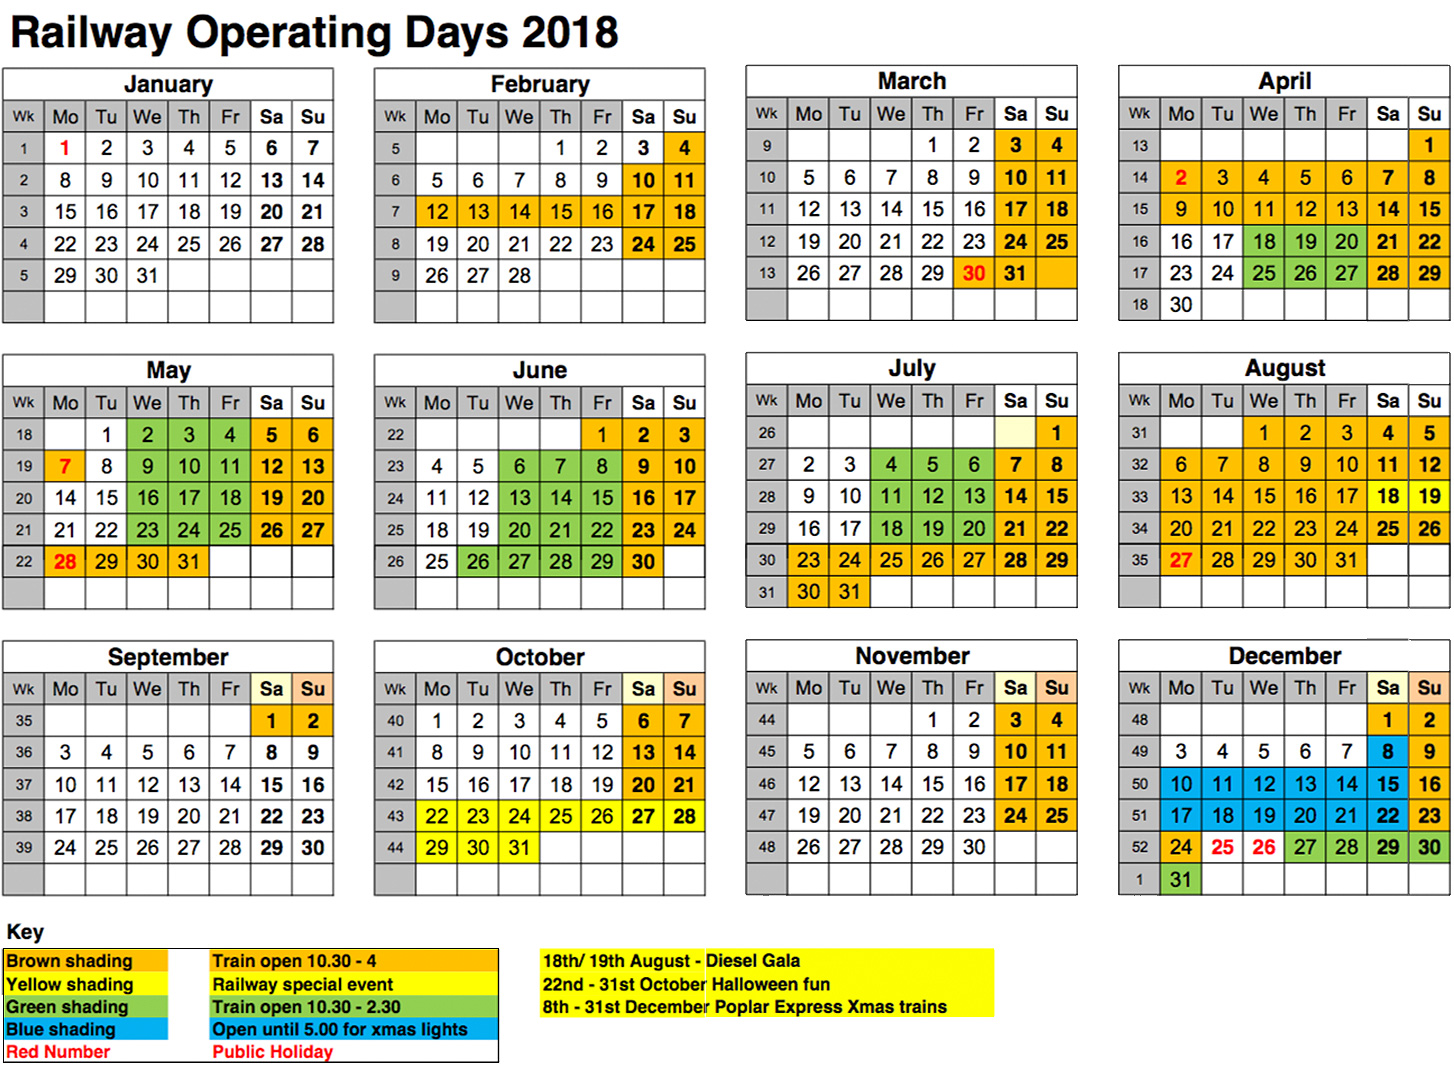 2017 Fares And Operating Days